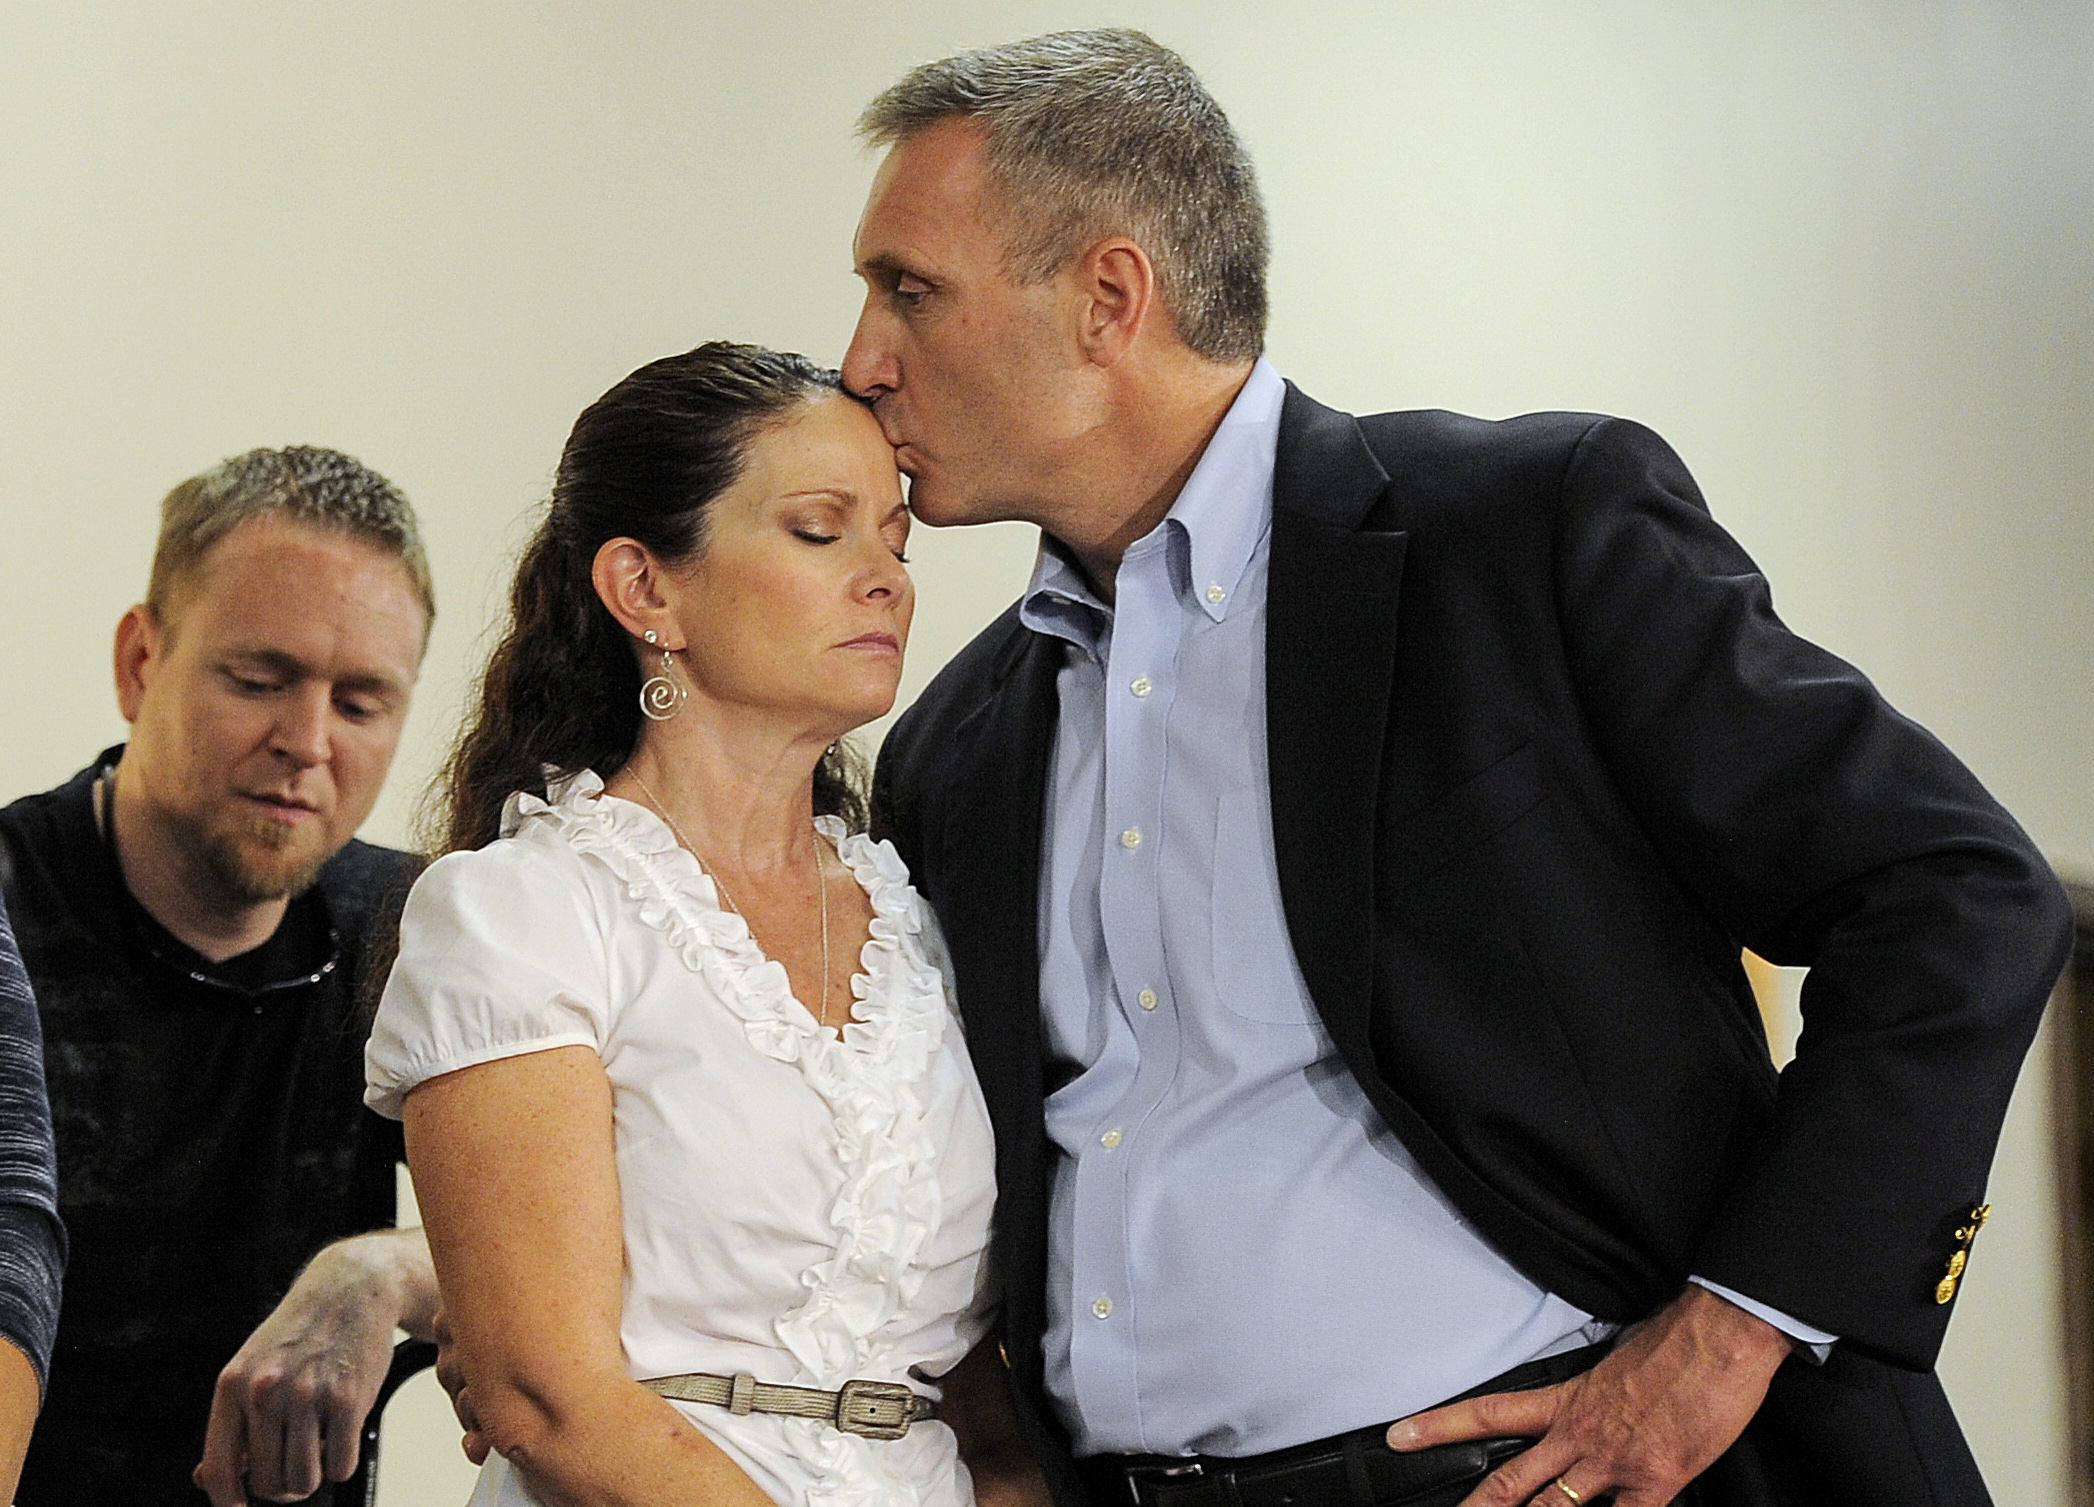 Photo: Thomas Teves and wife Caren (AP Photo)